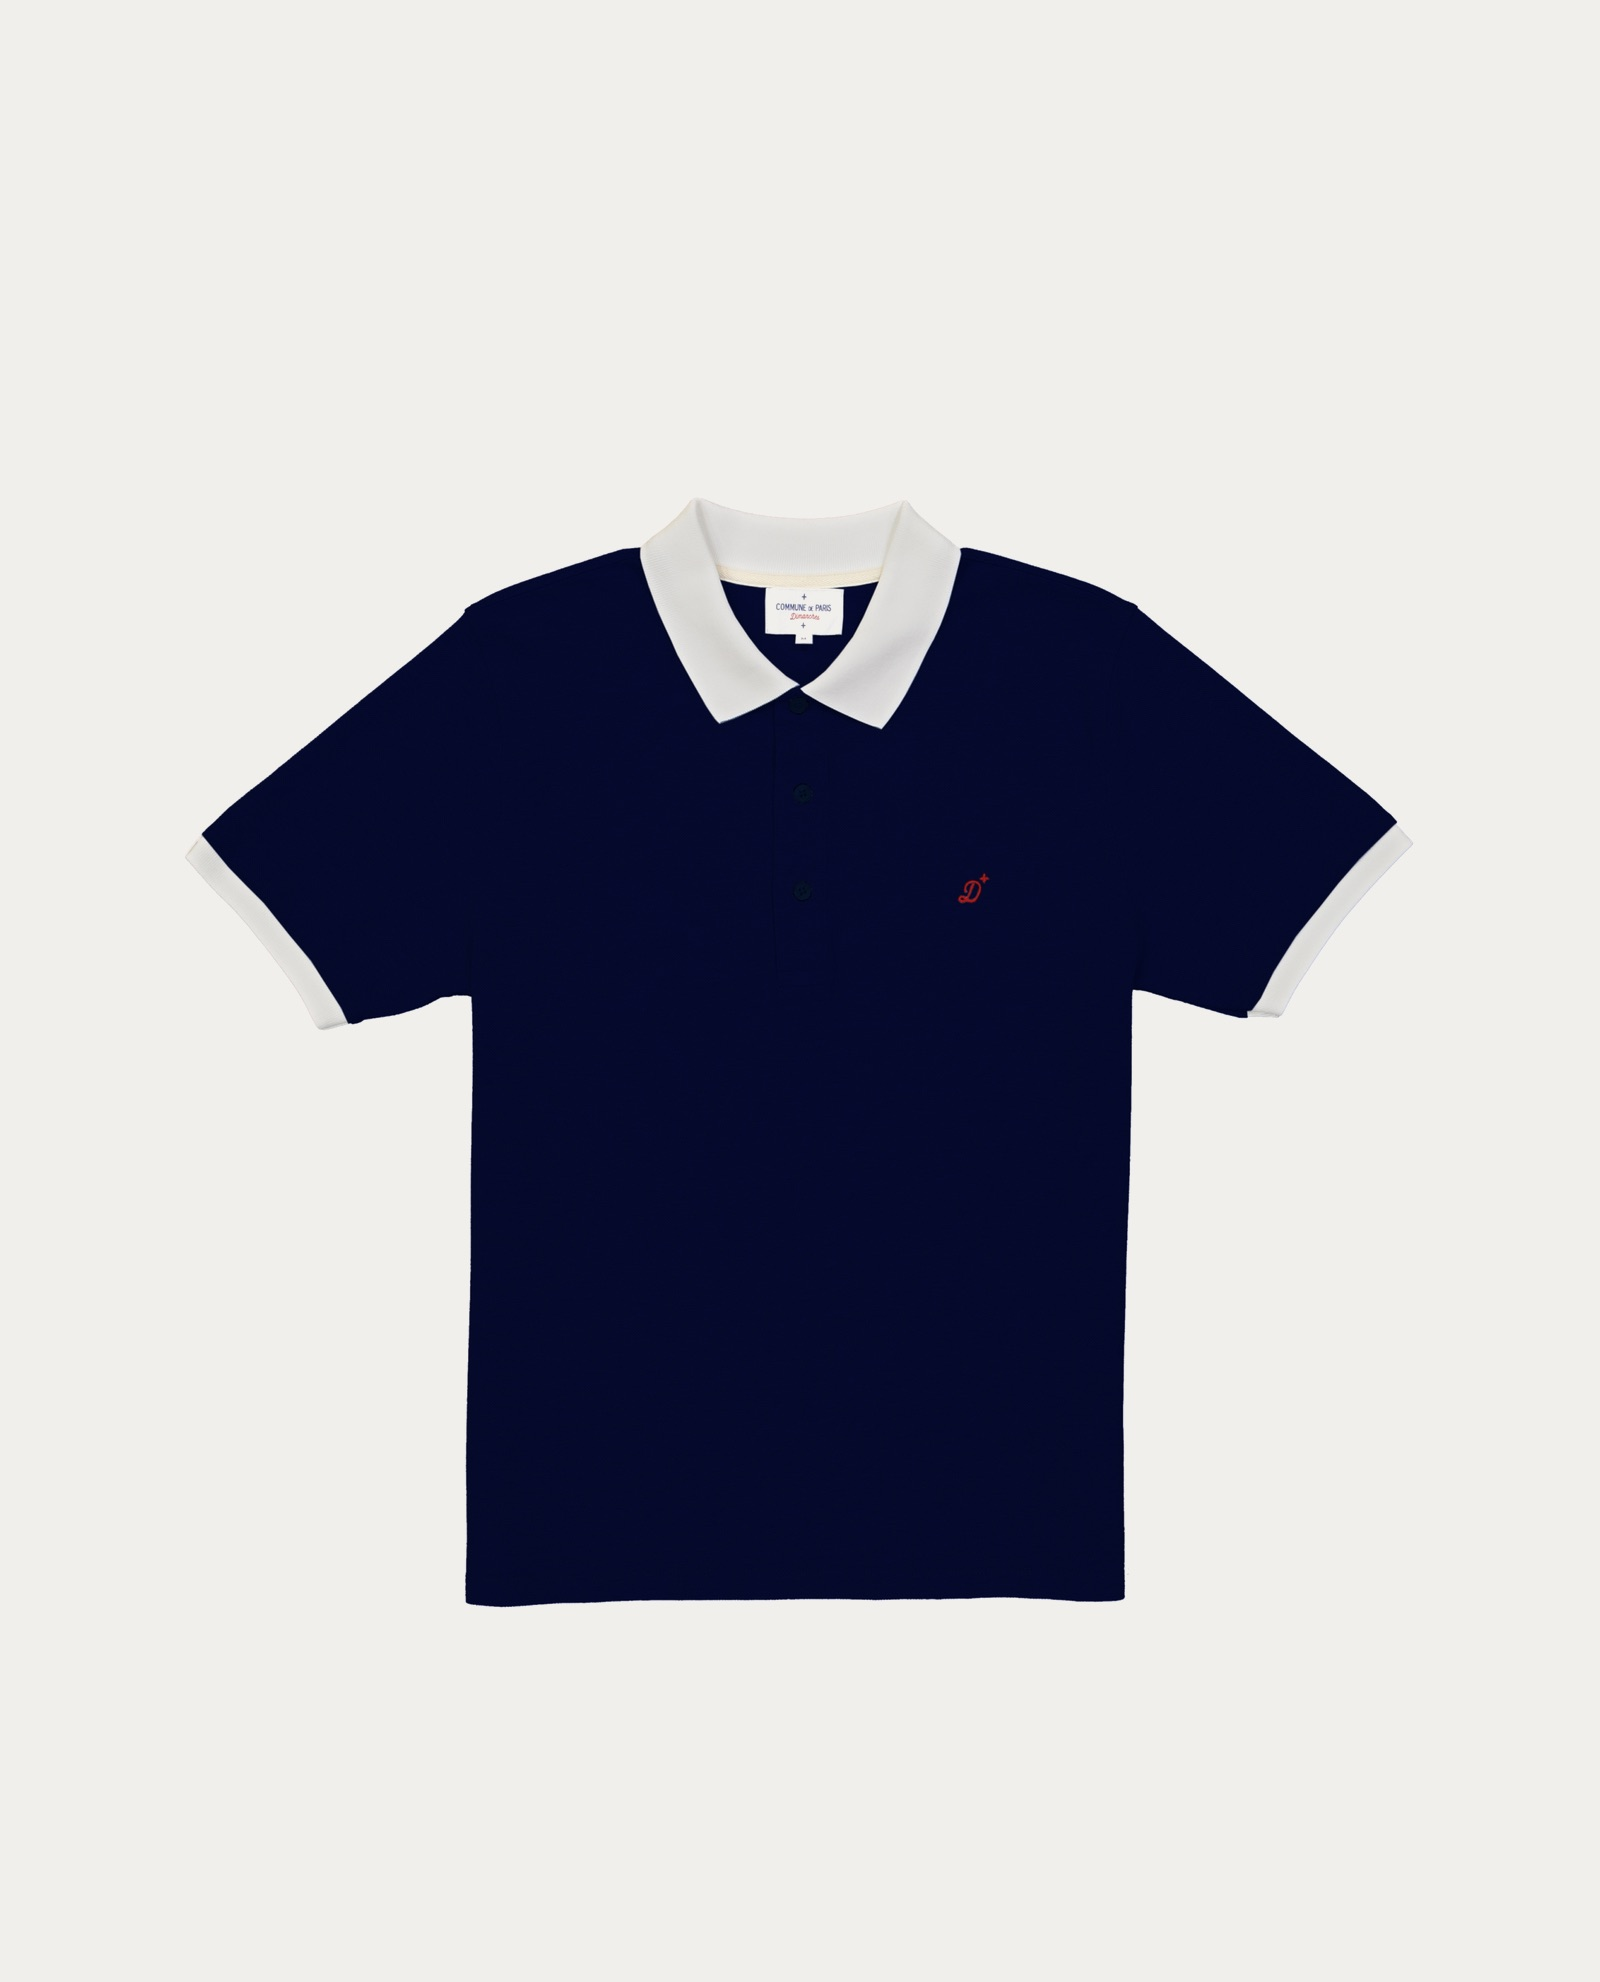 commune_de_paris_1871_polo_dimanches_navy